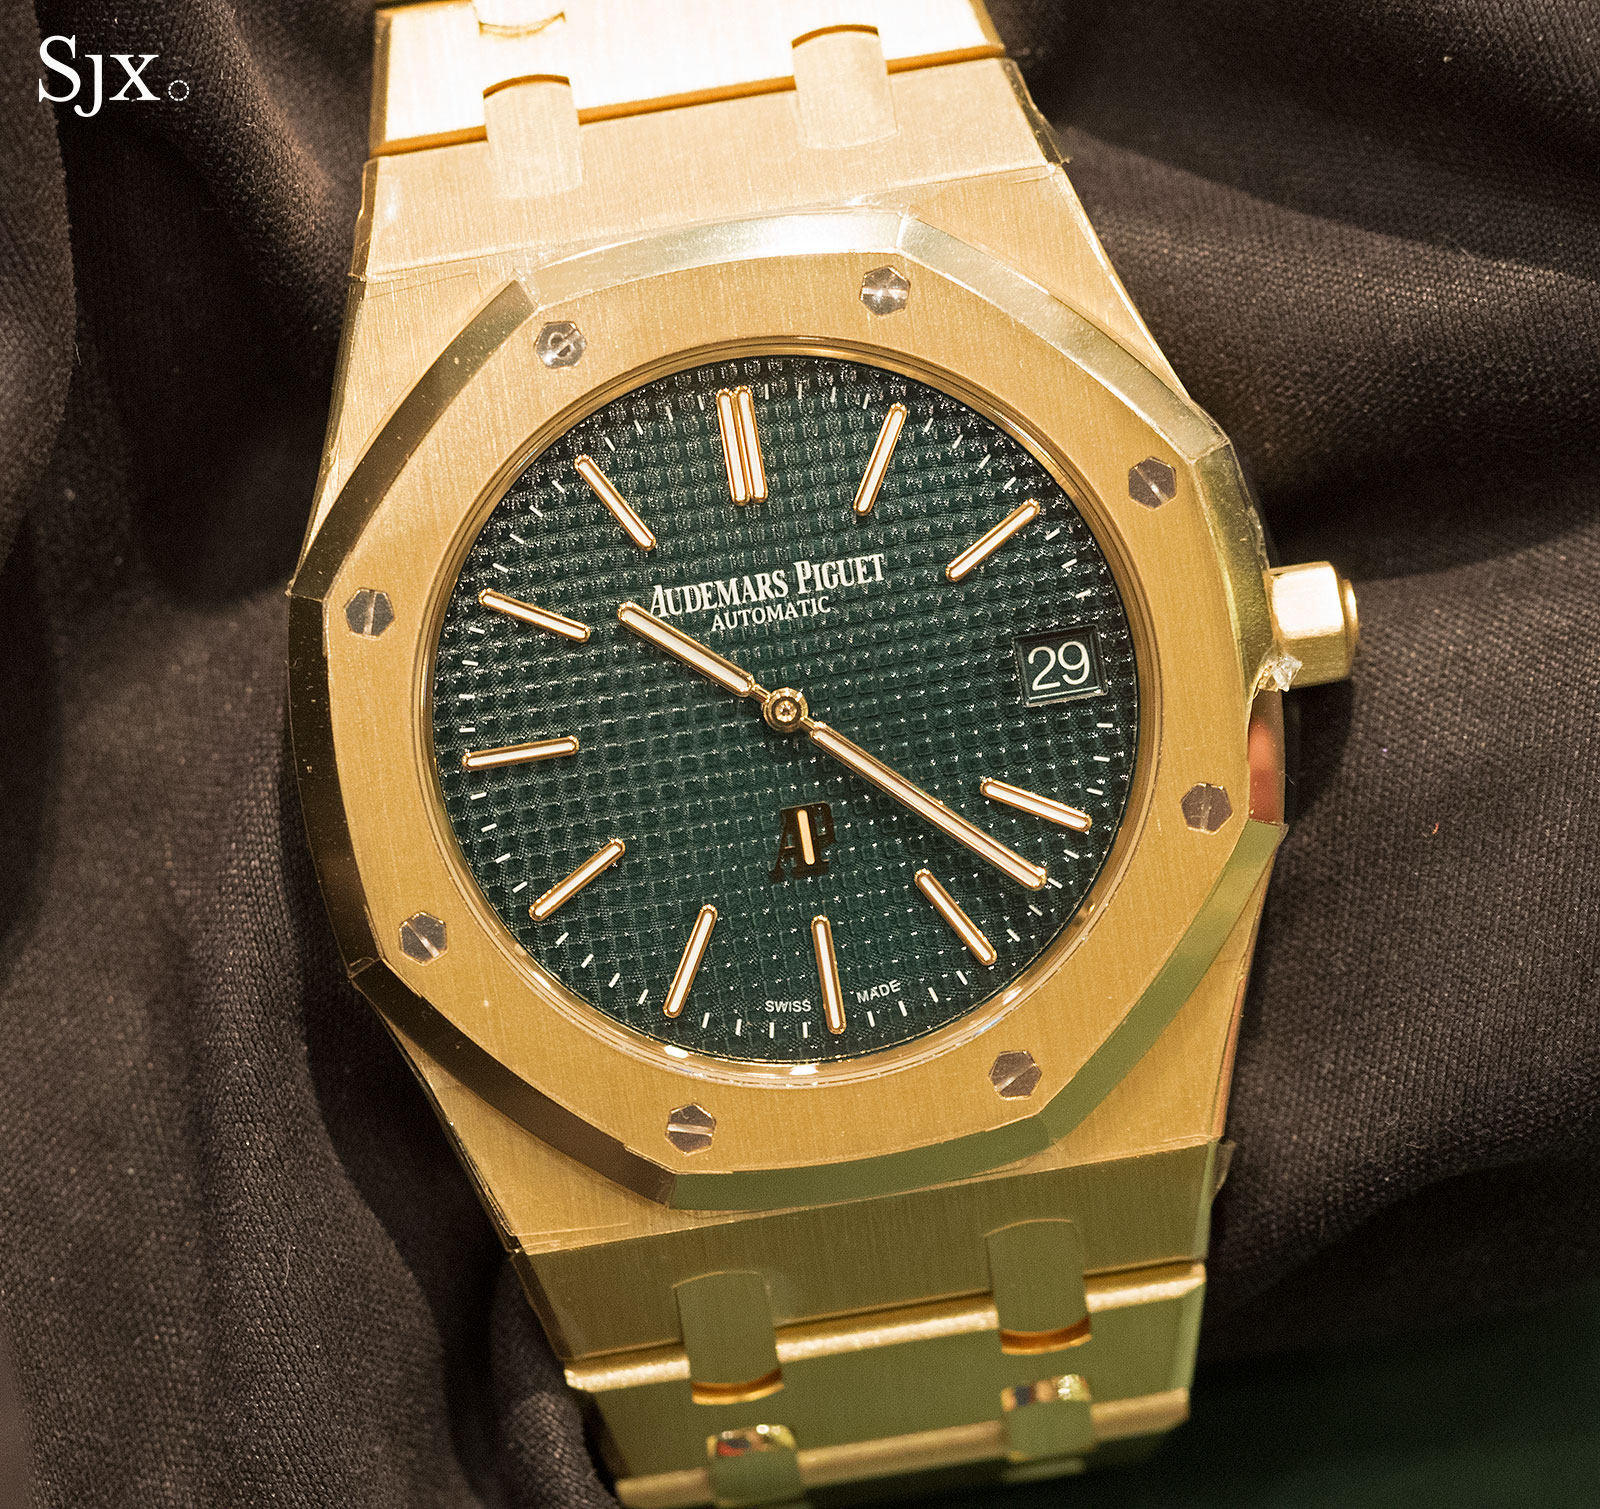 Audemars Piguet Royal Oak Extra-Thin The Hour Glass Yellow Gold 7